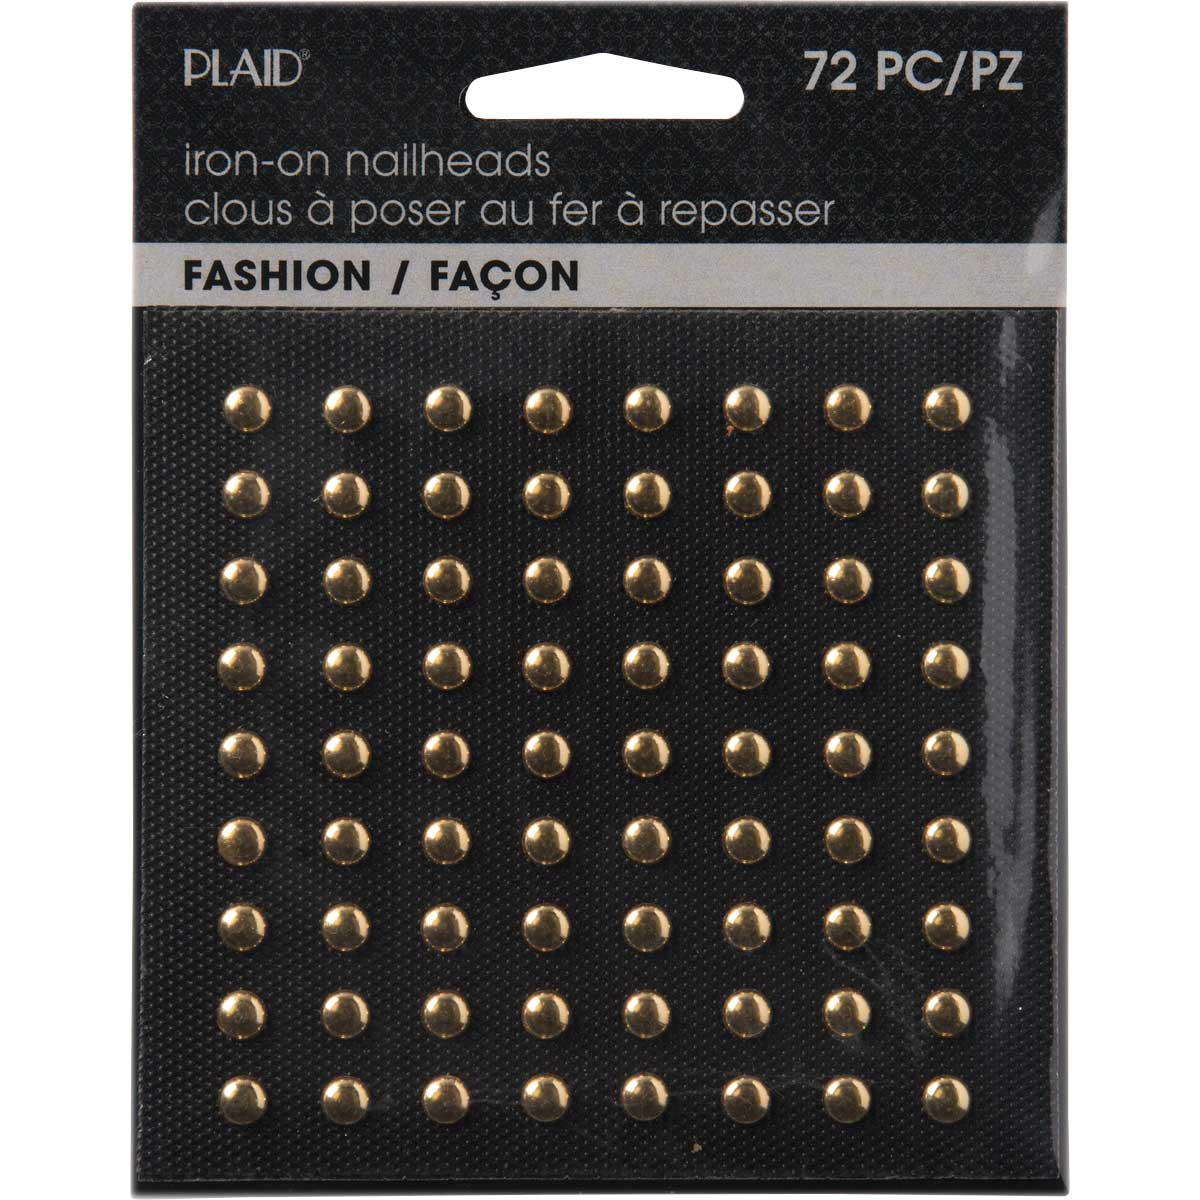 Plaid ® Hot Fix Nailhead Iron-Ons - Round Shiny Gold - 71025